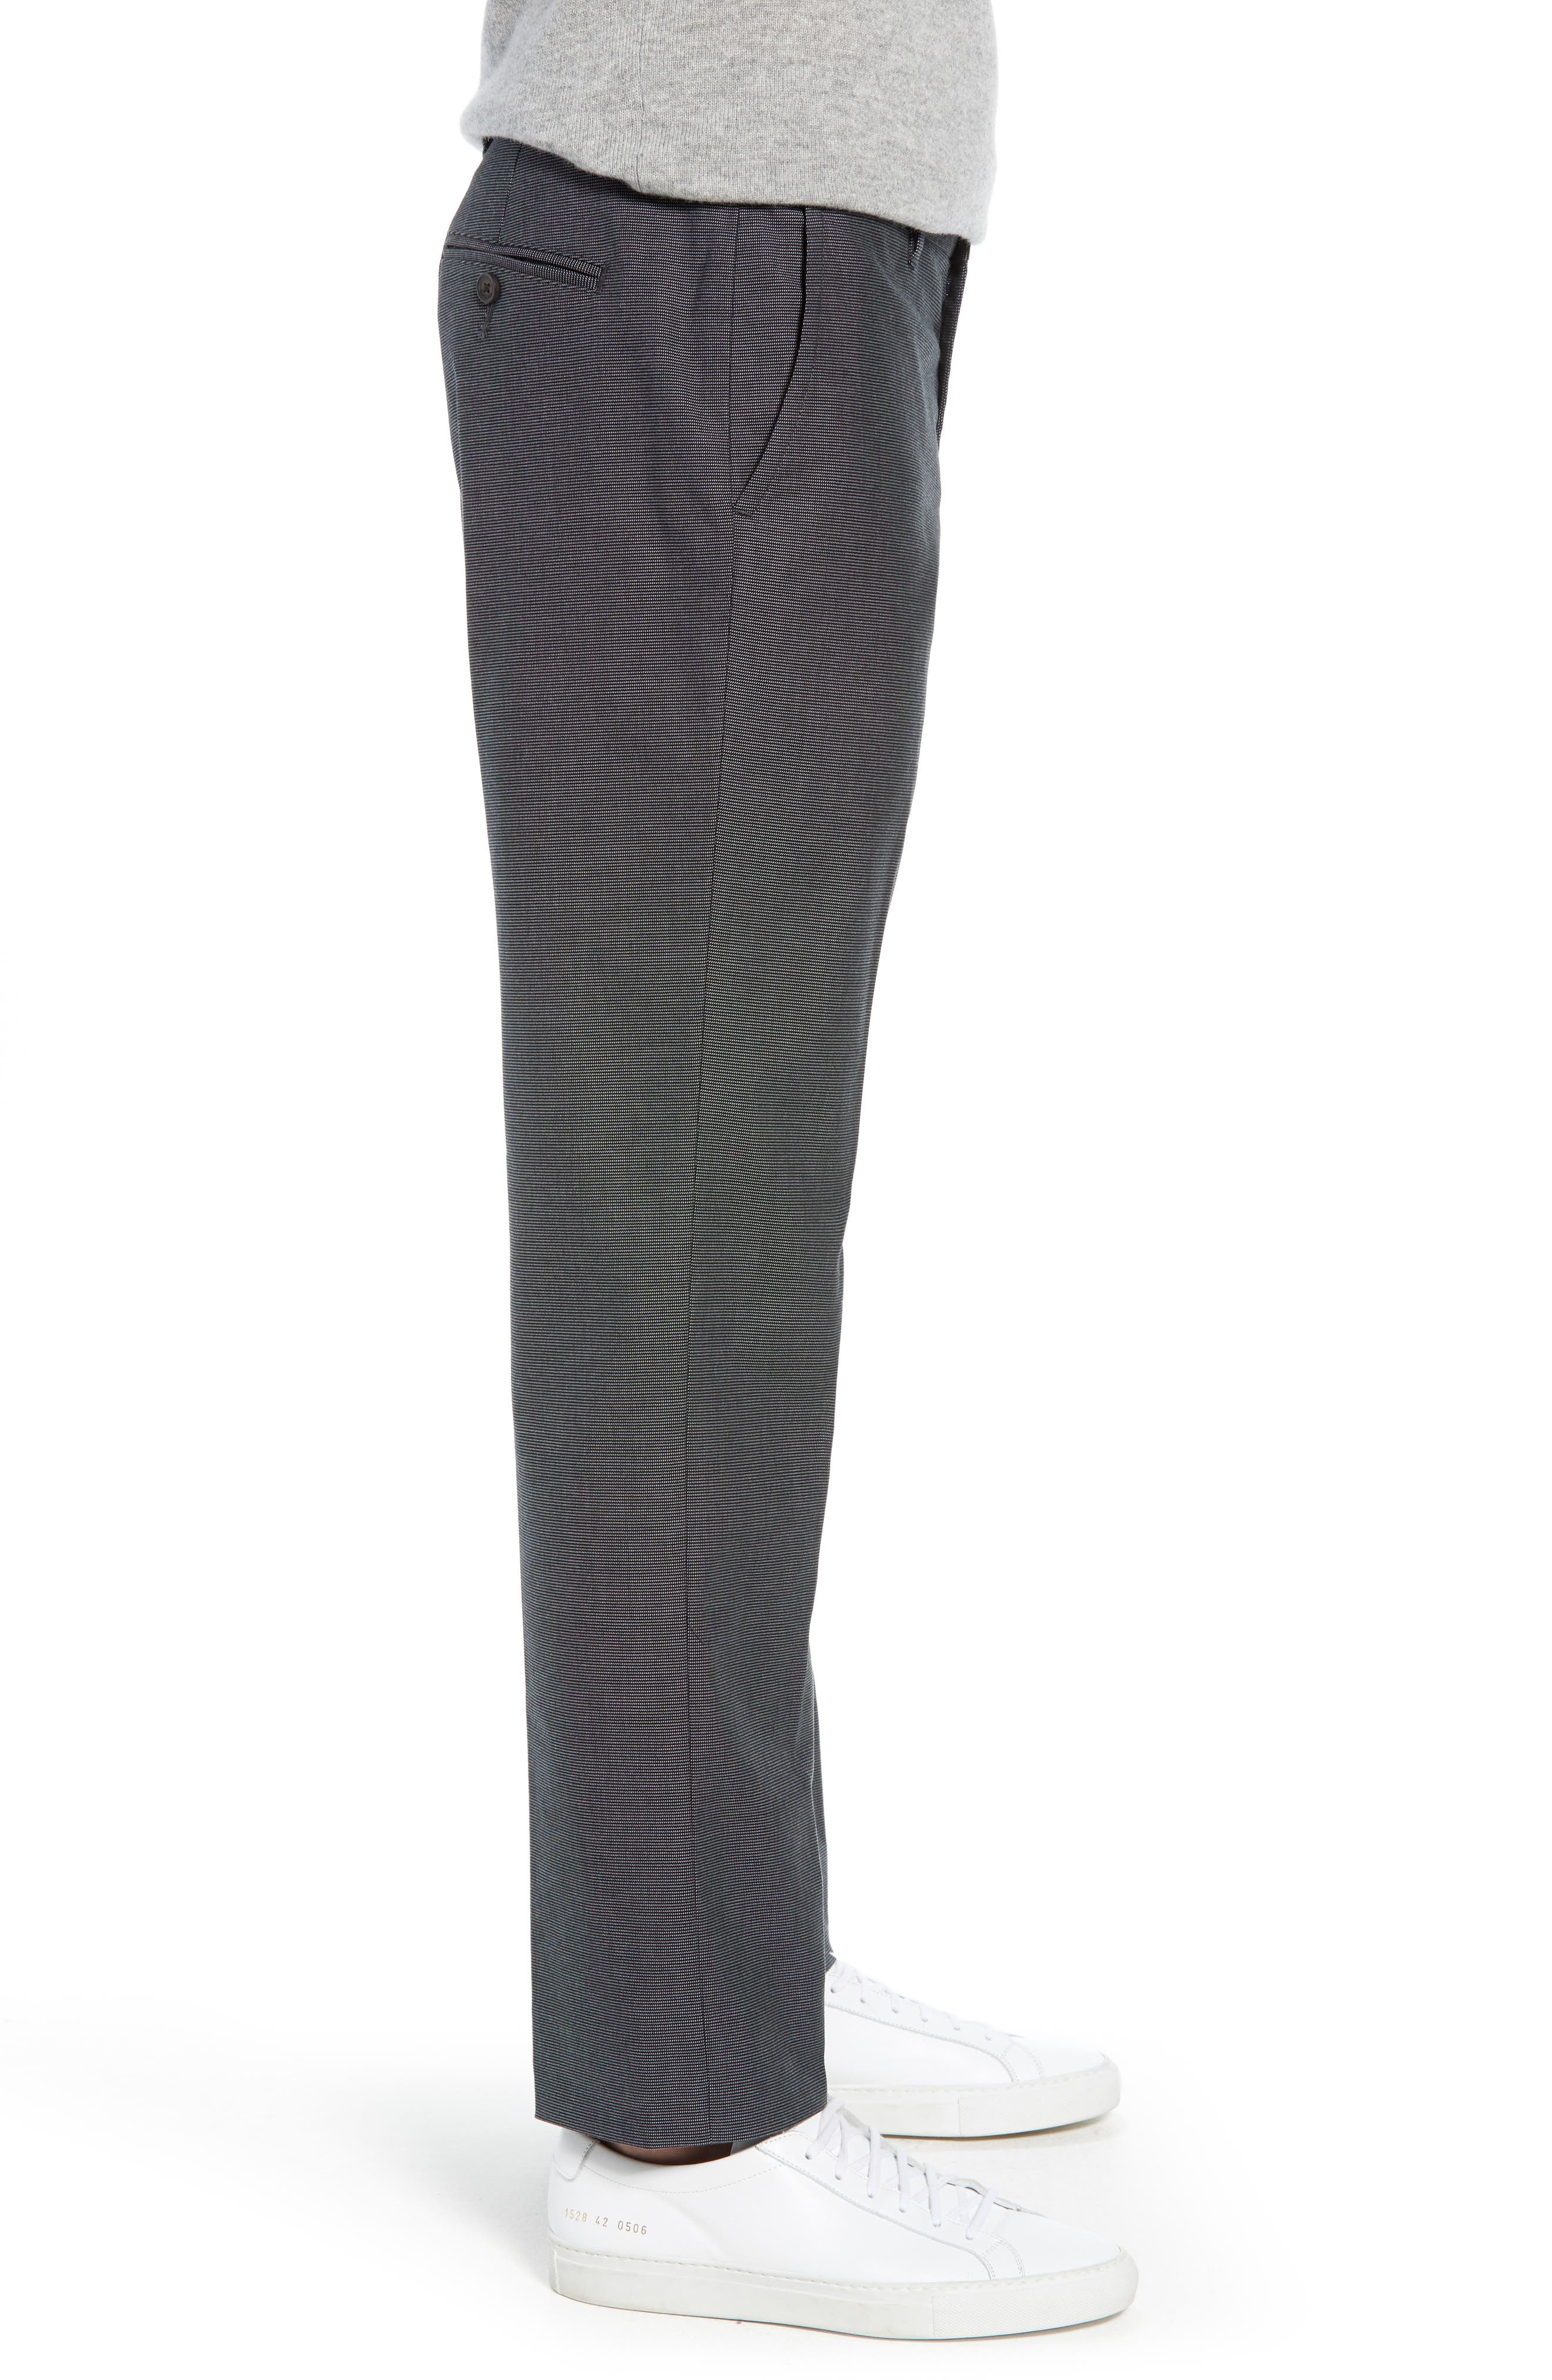 Weekday Warrior Straight Leg Stretch Dress Pants,                             Alternate thumbnail 3, color,                             TUESDAY CHARCOAL